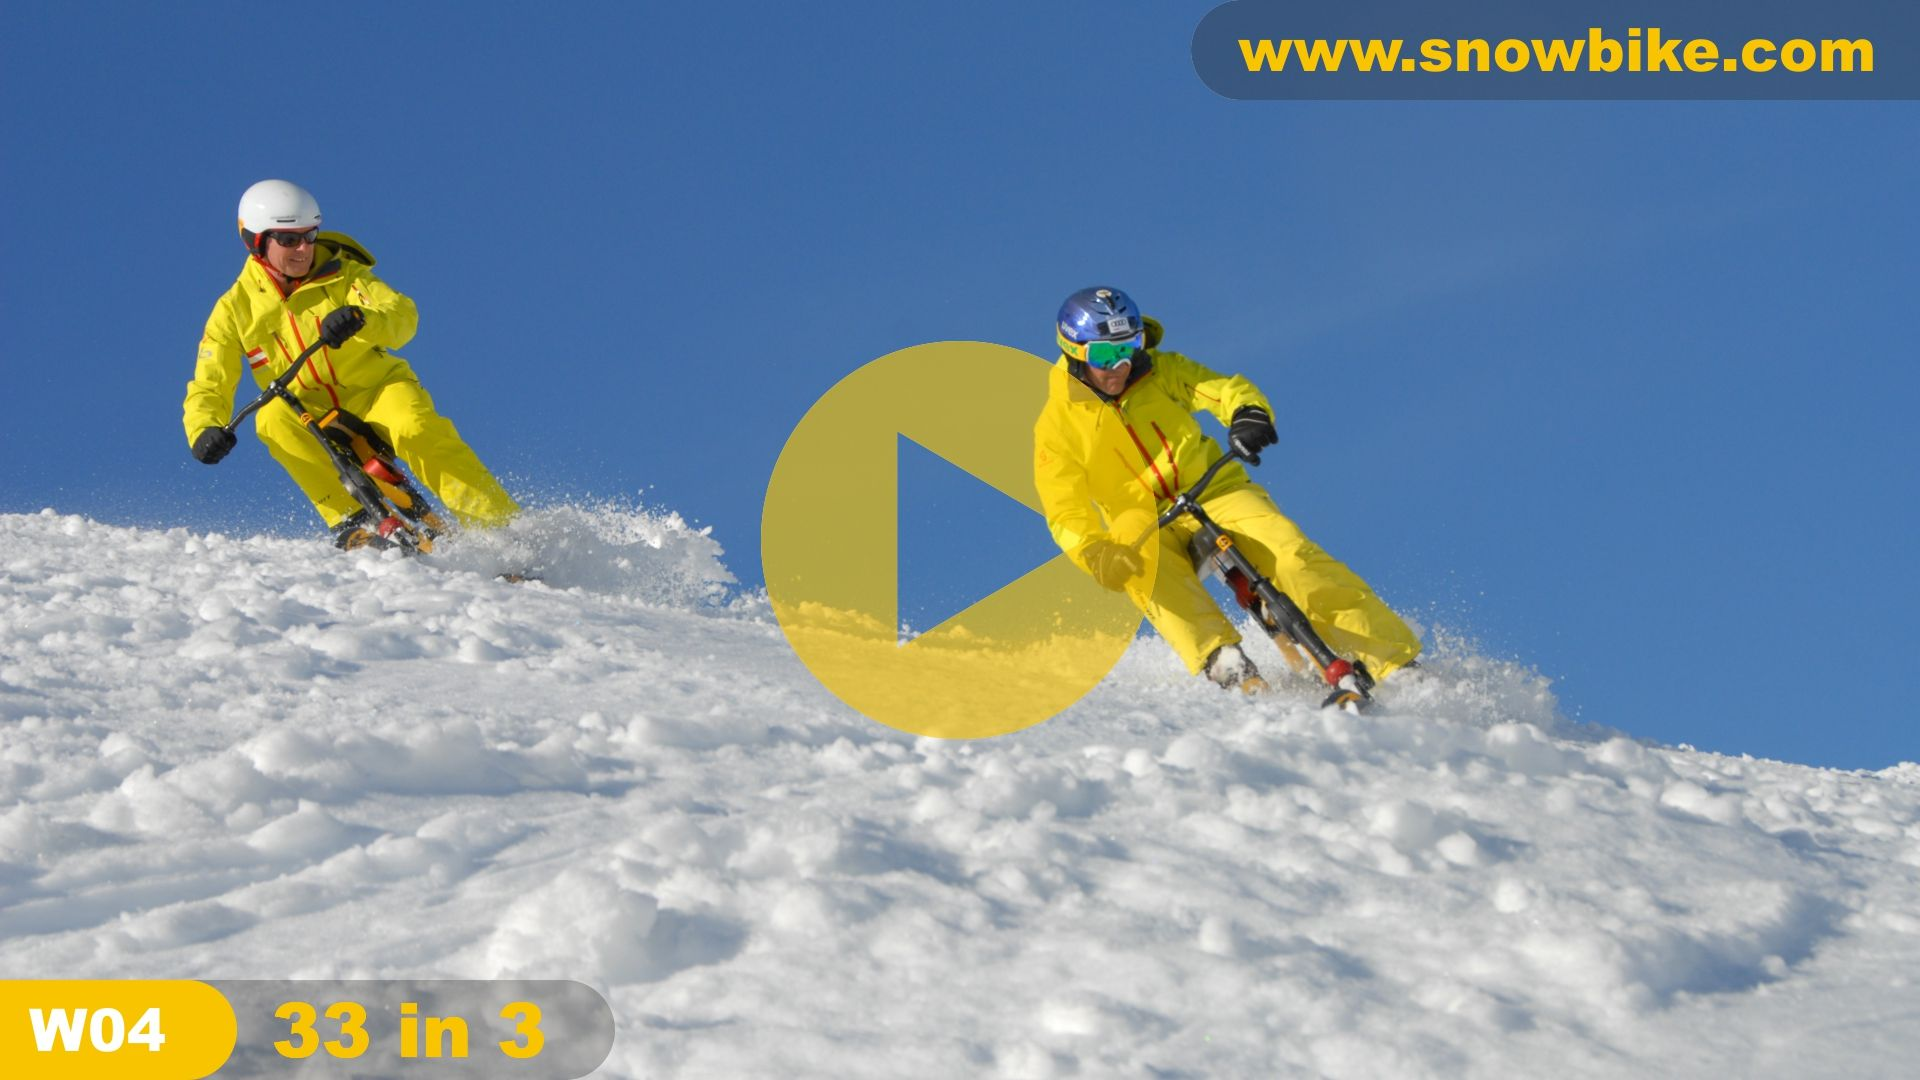 brenter-snowbike-world-record-33-in-3-coverF8326936-73F8-6A99-92C5-611147D7205D.jpg